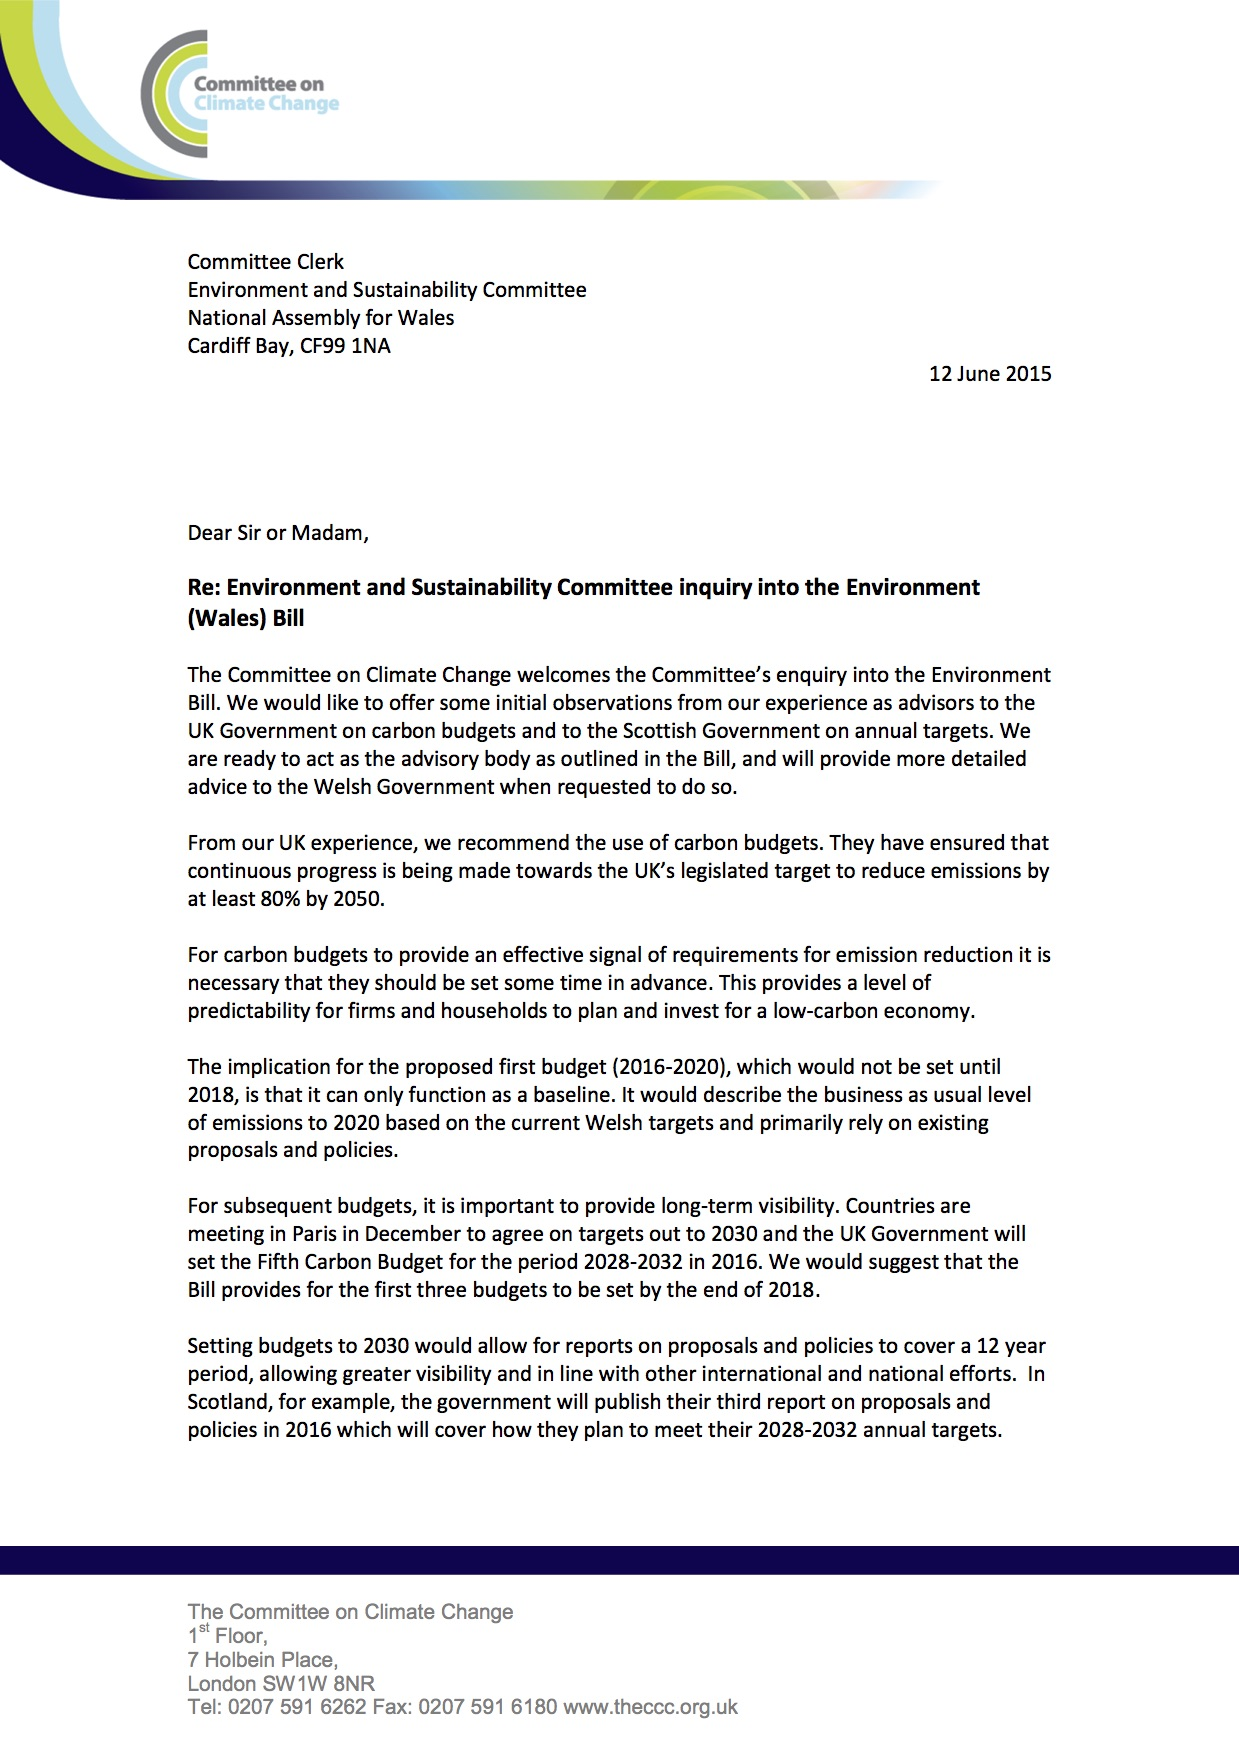 Response To Environment Bill Letter To Env Sust Committee June 2015